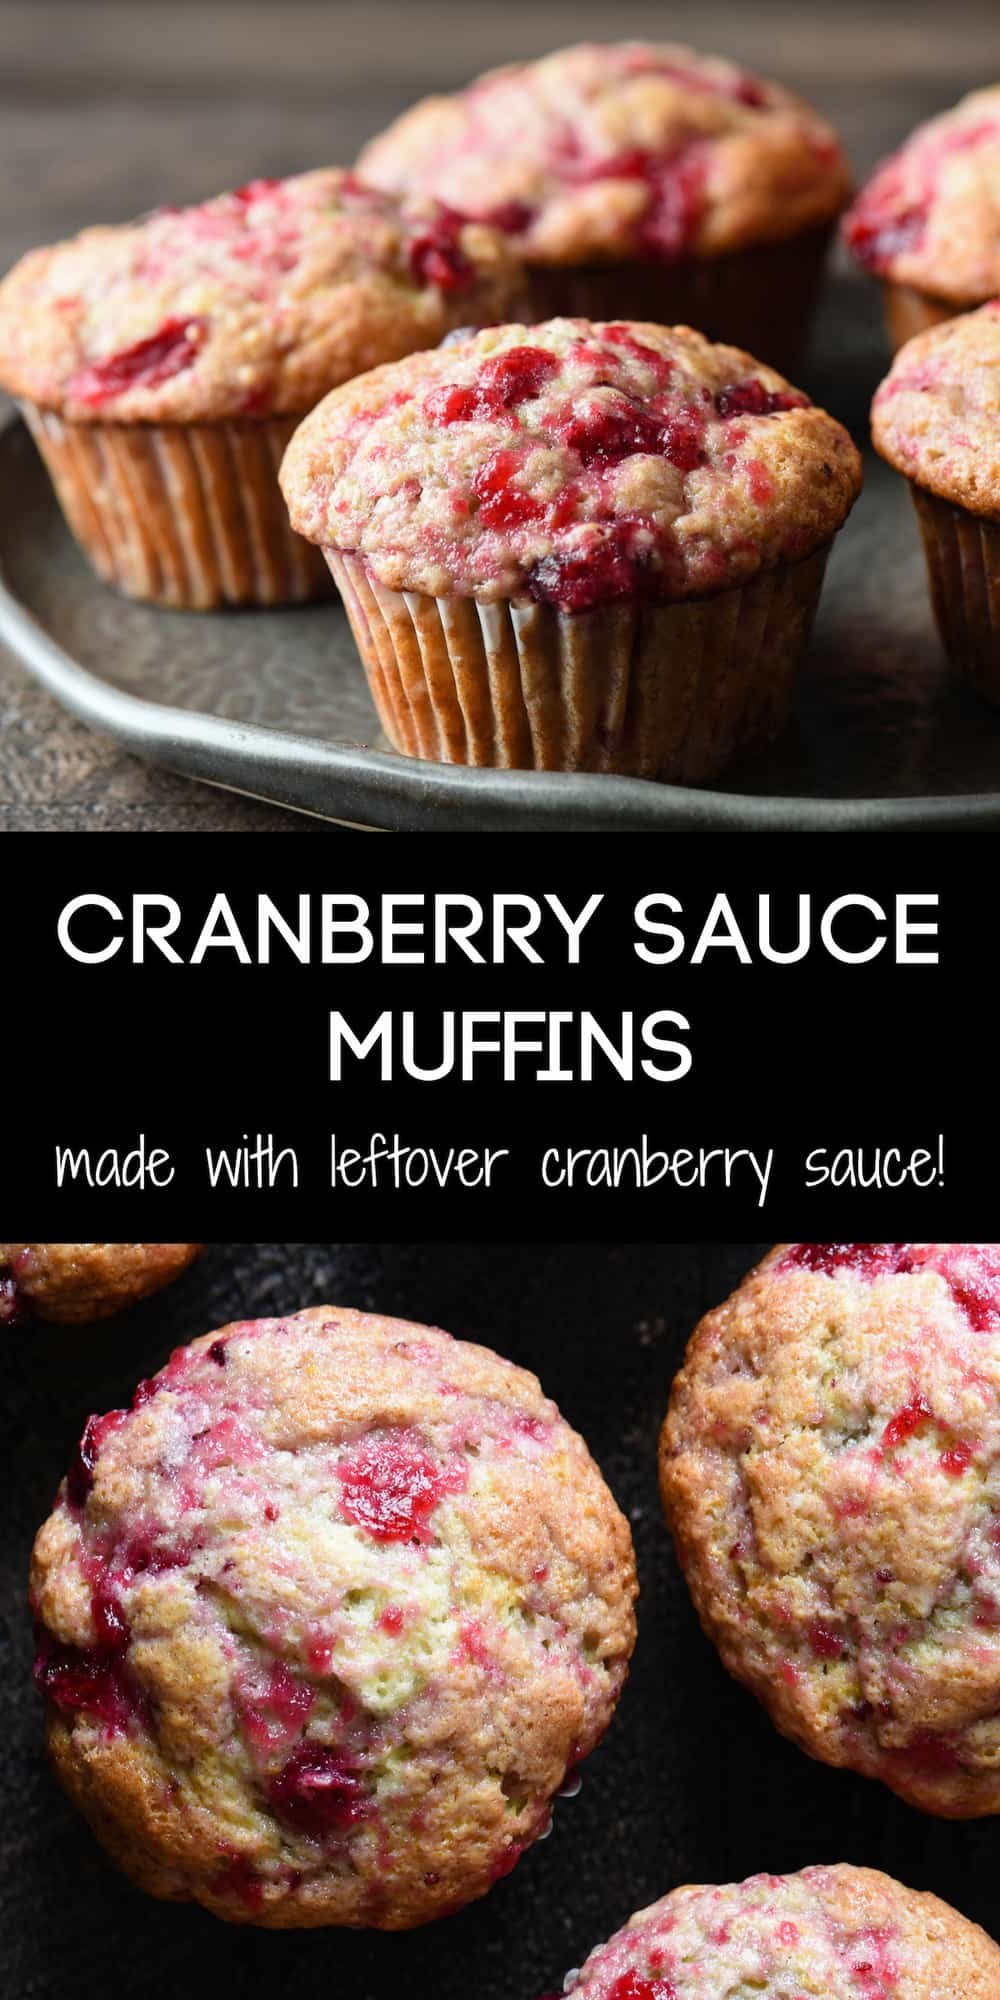 Collage of images of muffins with overlay: CRANBERRY SAUCE MUFFINS made with leftover cranberry sauce!